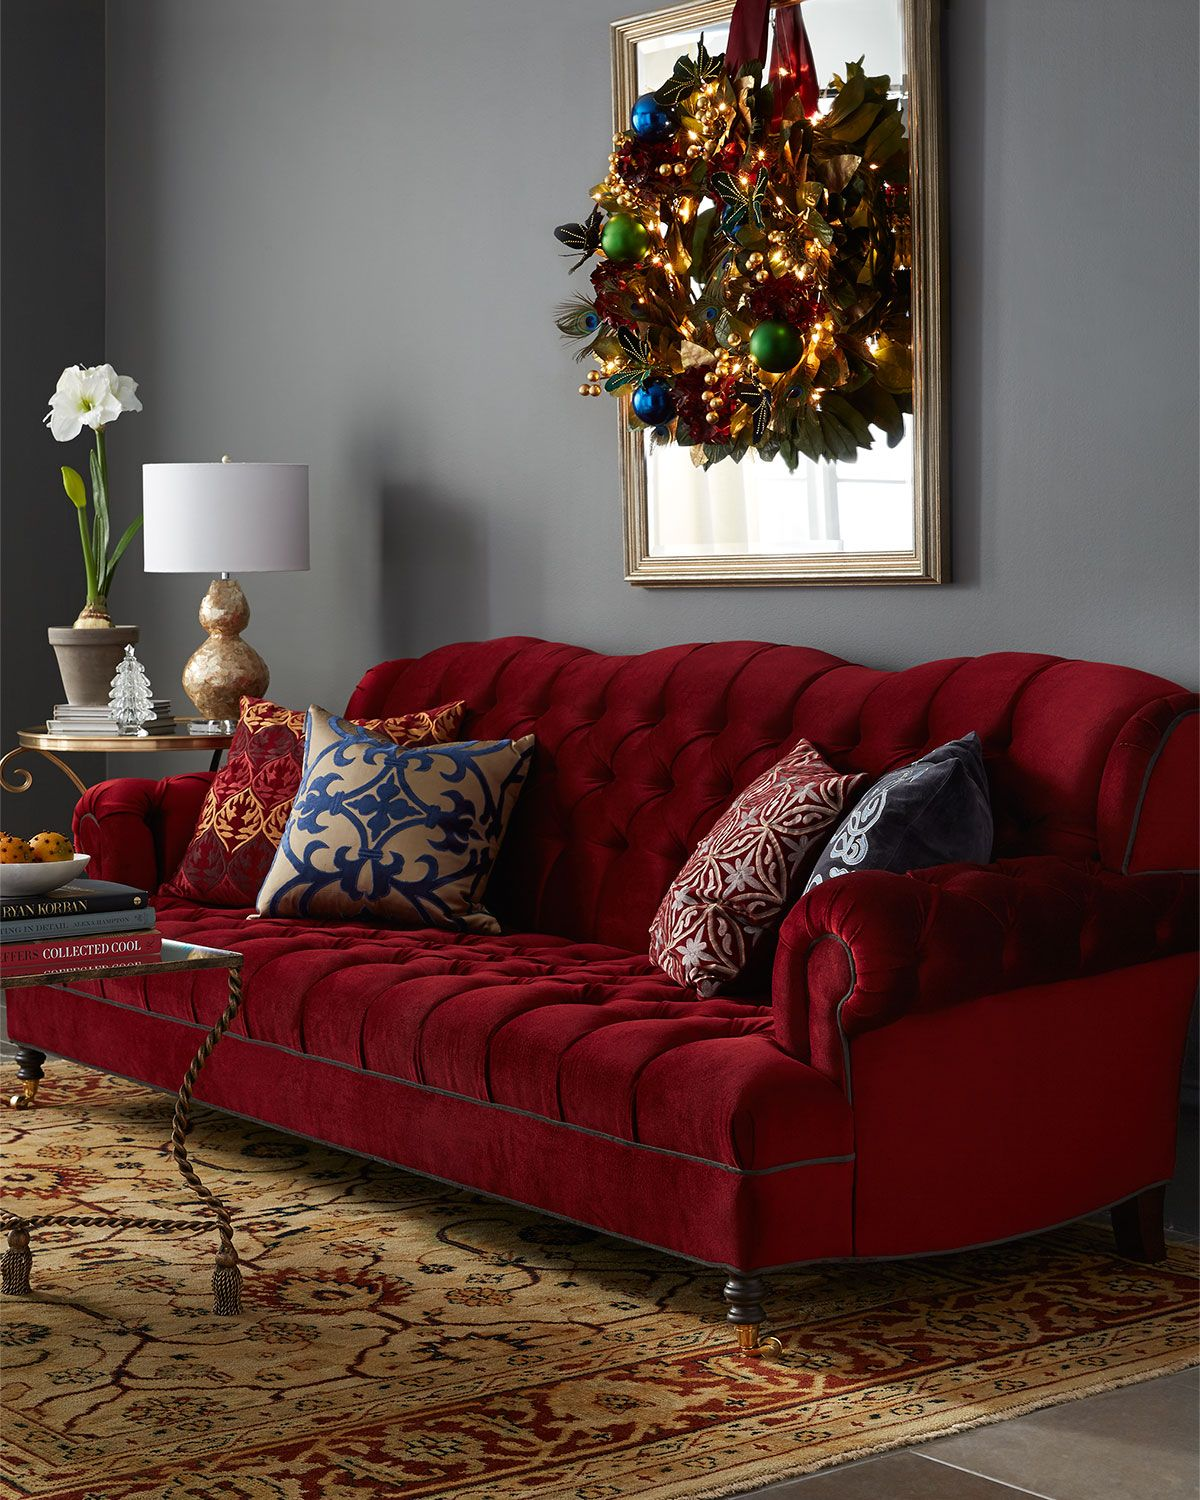 Decoraciones Hogar Haute House Mr Smith Cranberry Sofa Decoraciones